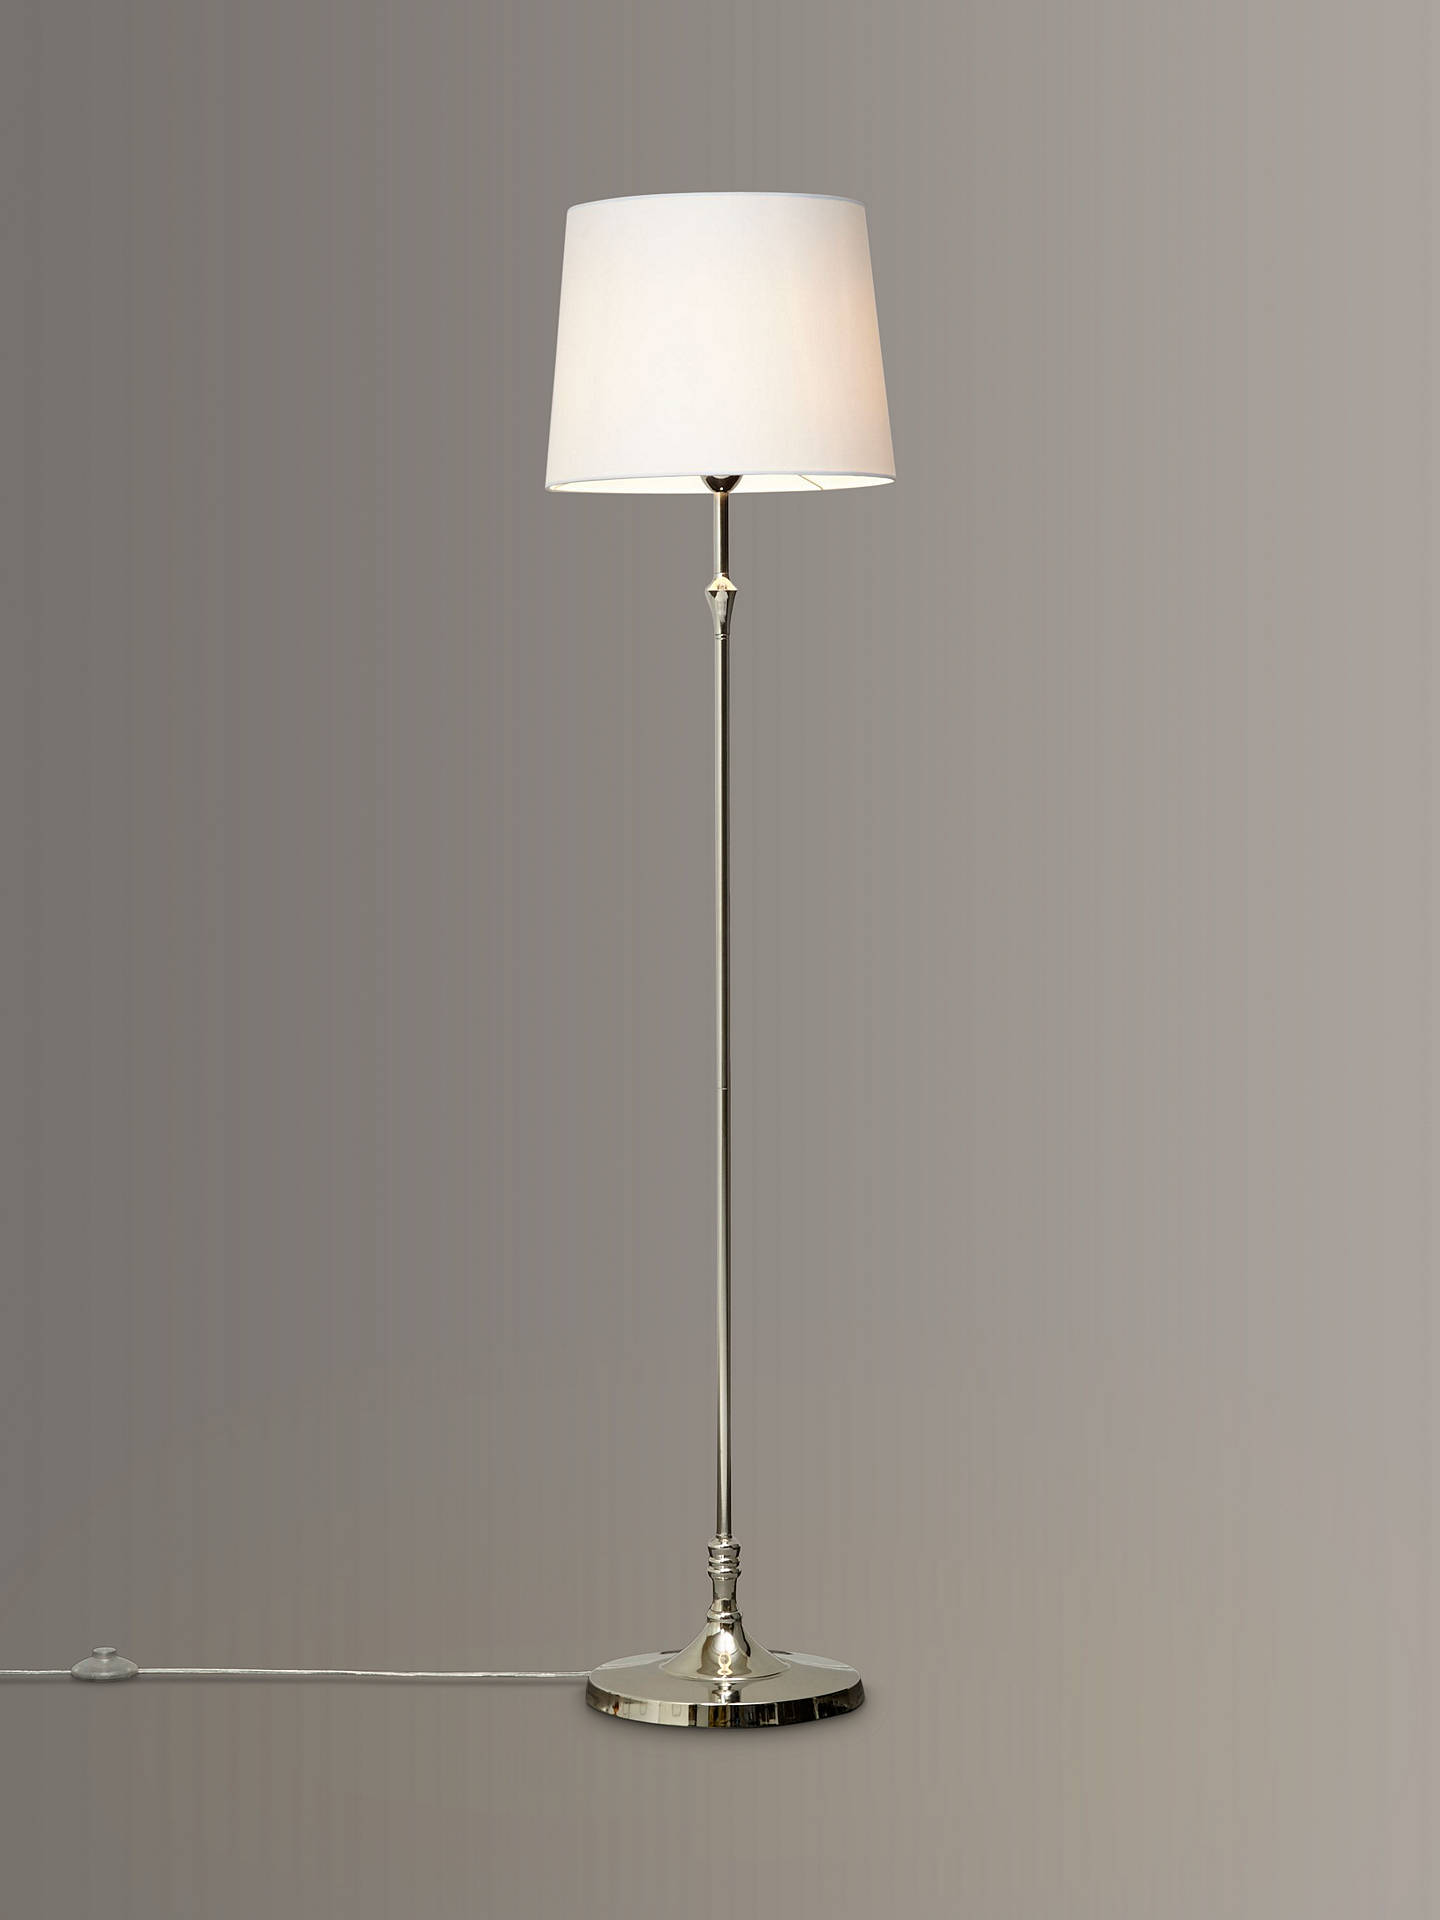 Buy John Lewis & Partners Cleo Floor Lamps, Nickel Online at johnlewis.com